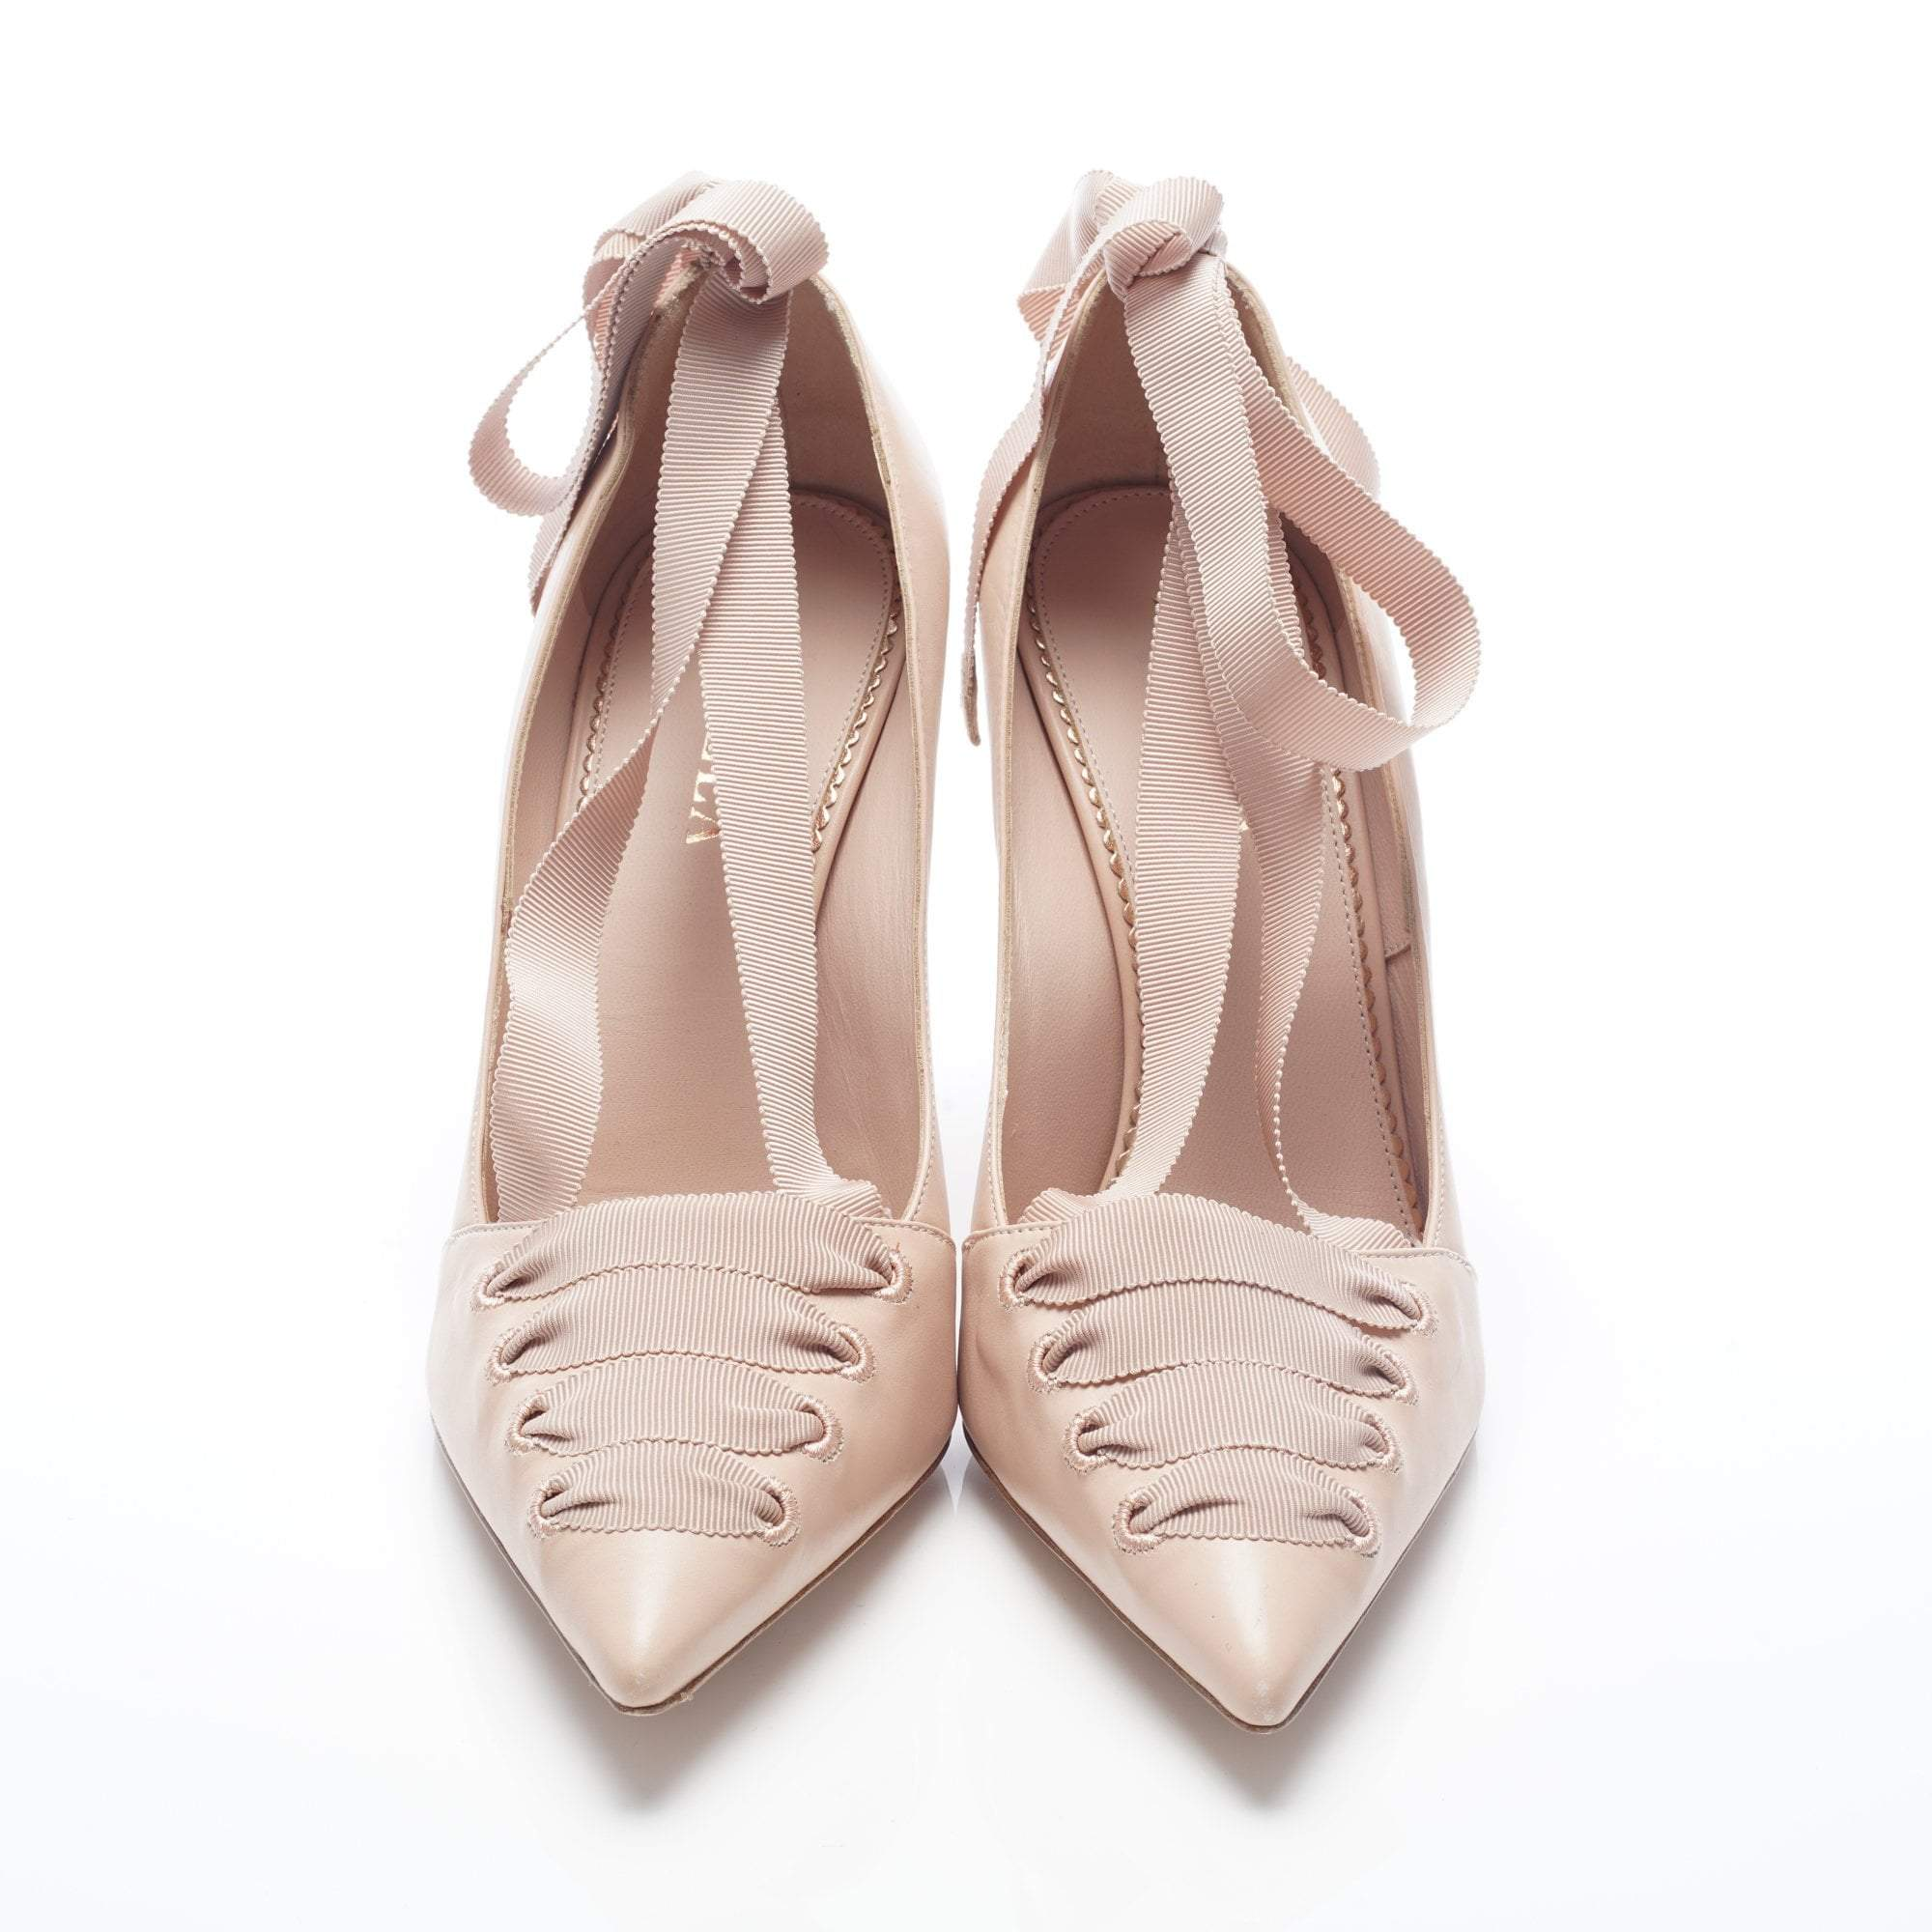 Le Silla Beige Lace Up Pointed Toe Pumps